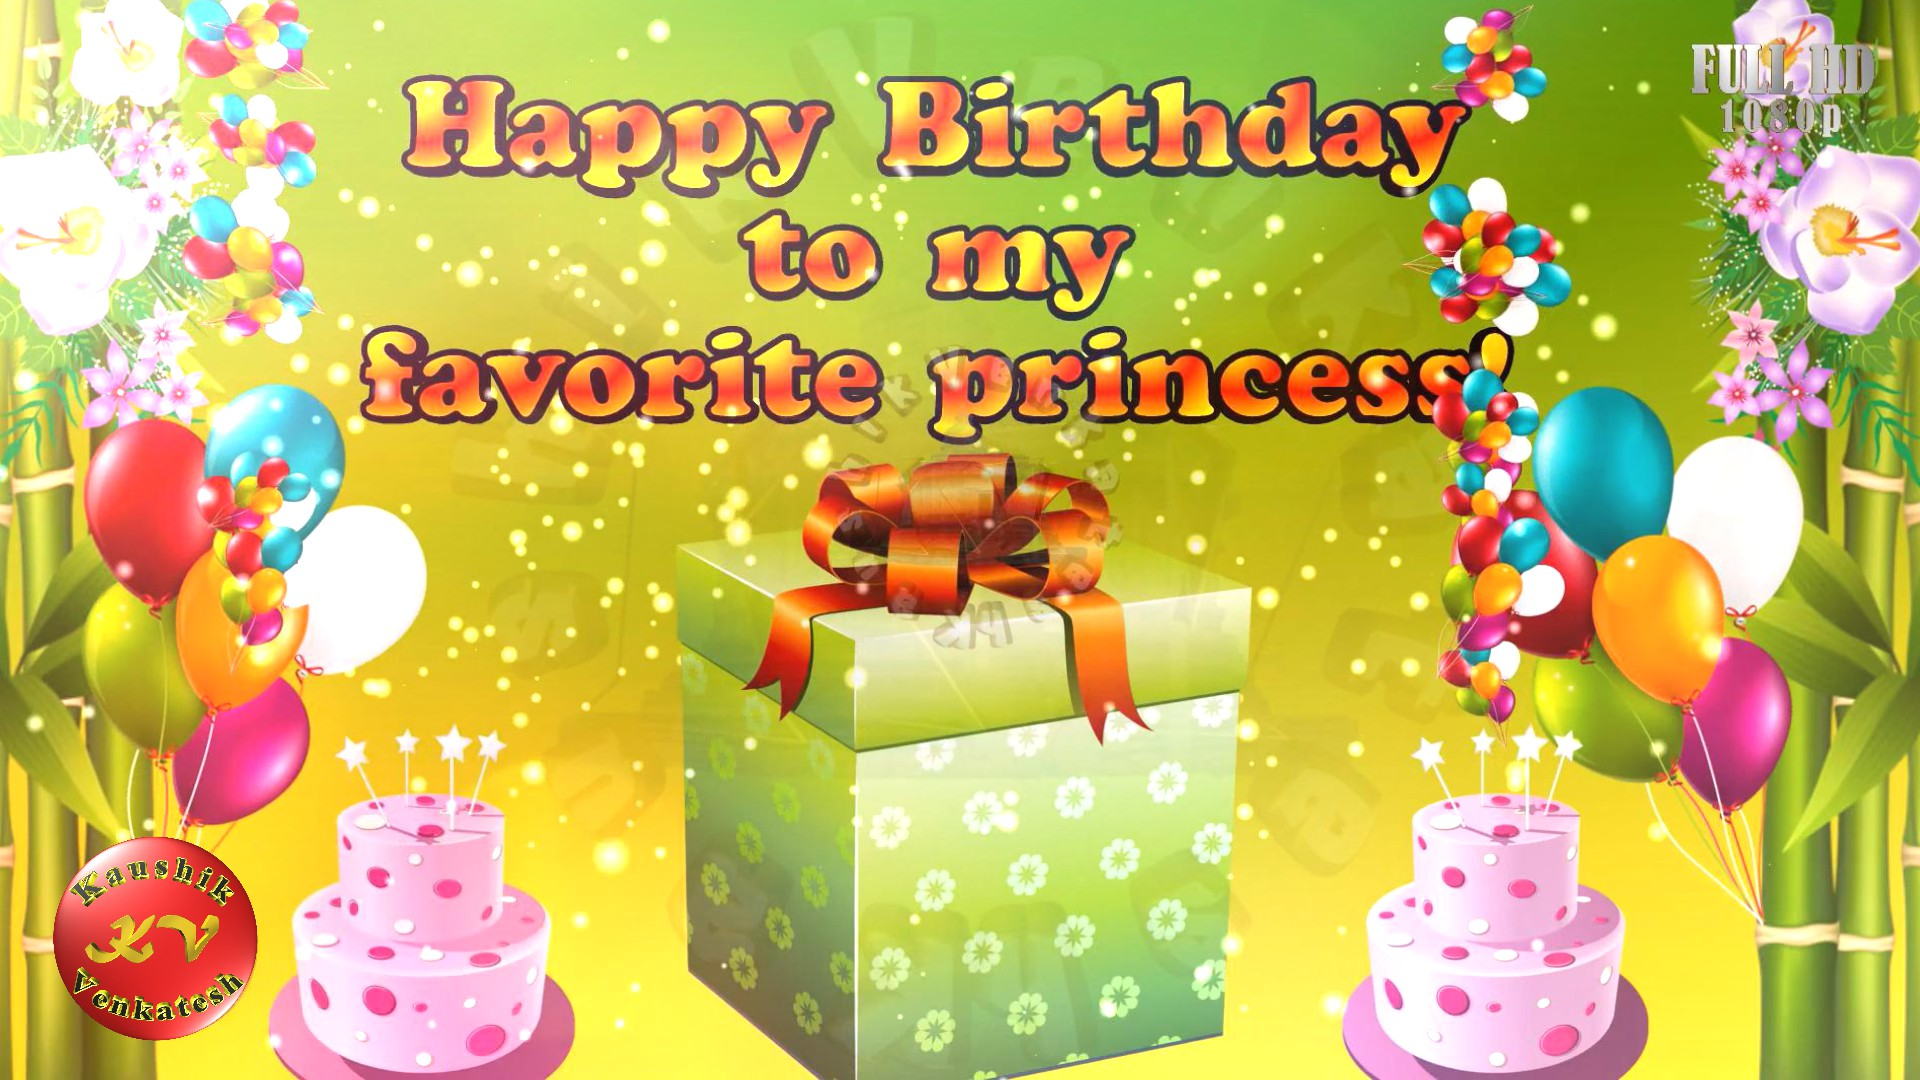 Greetings Image for the Special Occasion of Birthday. Happy Birthday Wishes Images for your cute Daughter's Birthday.